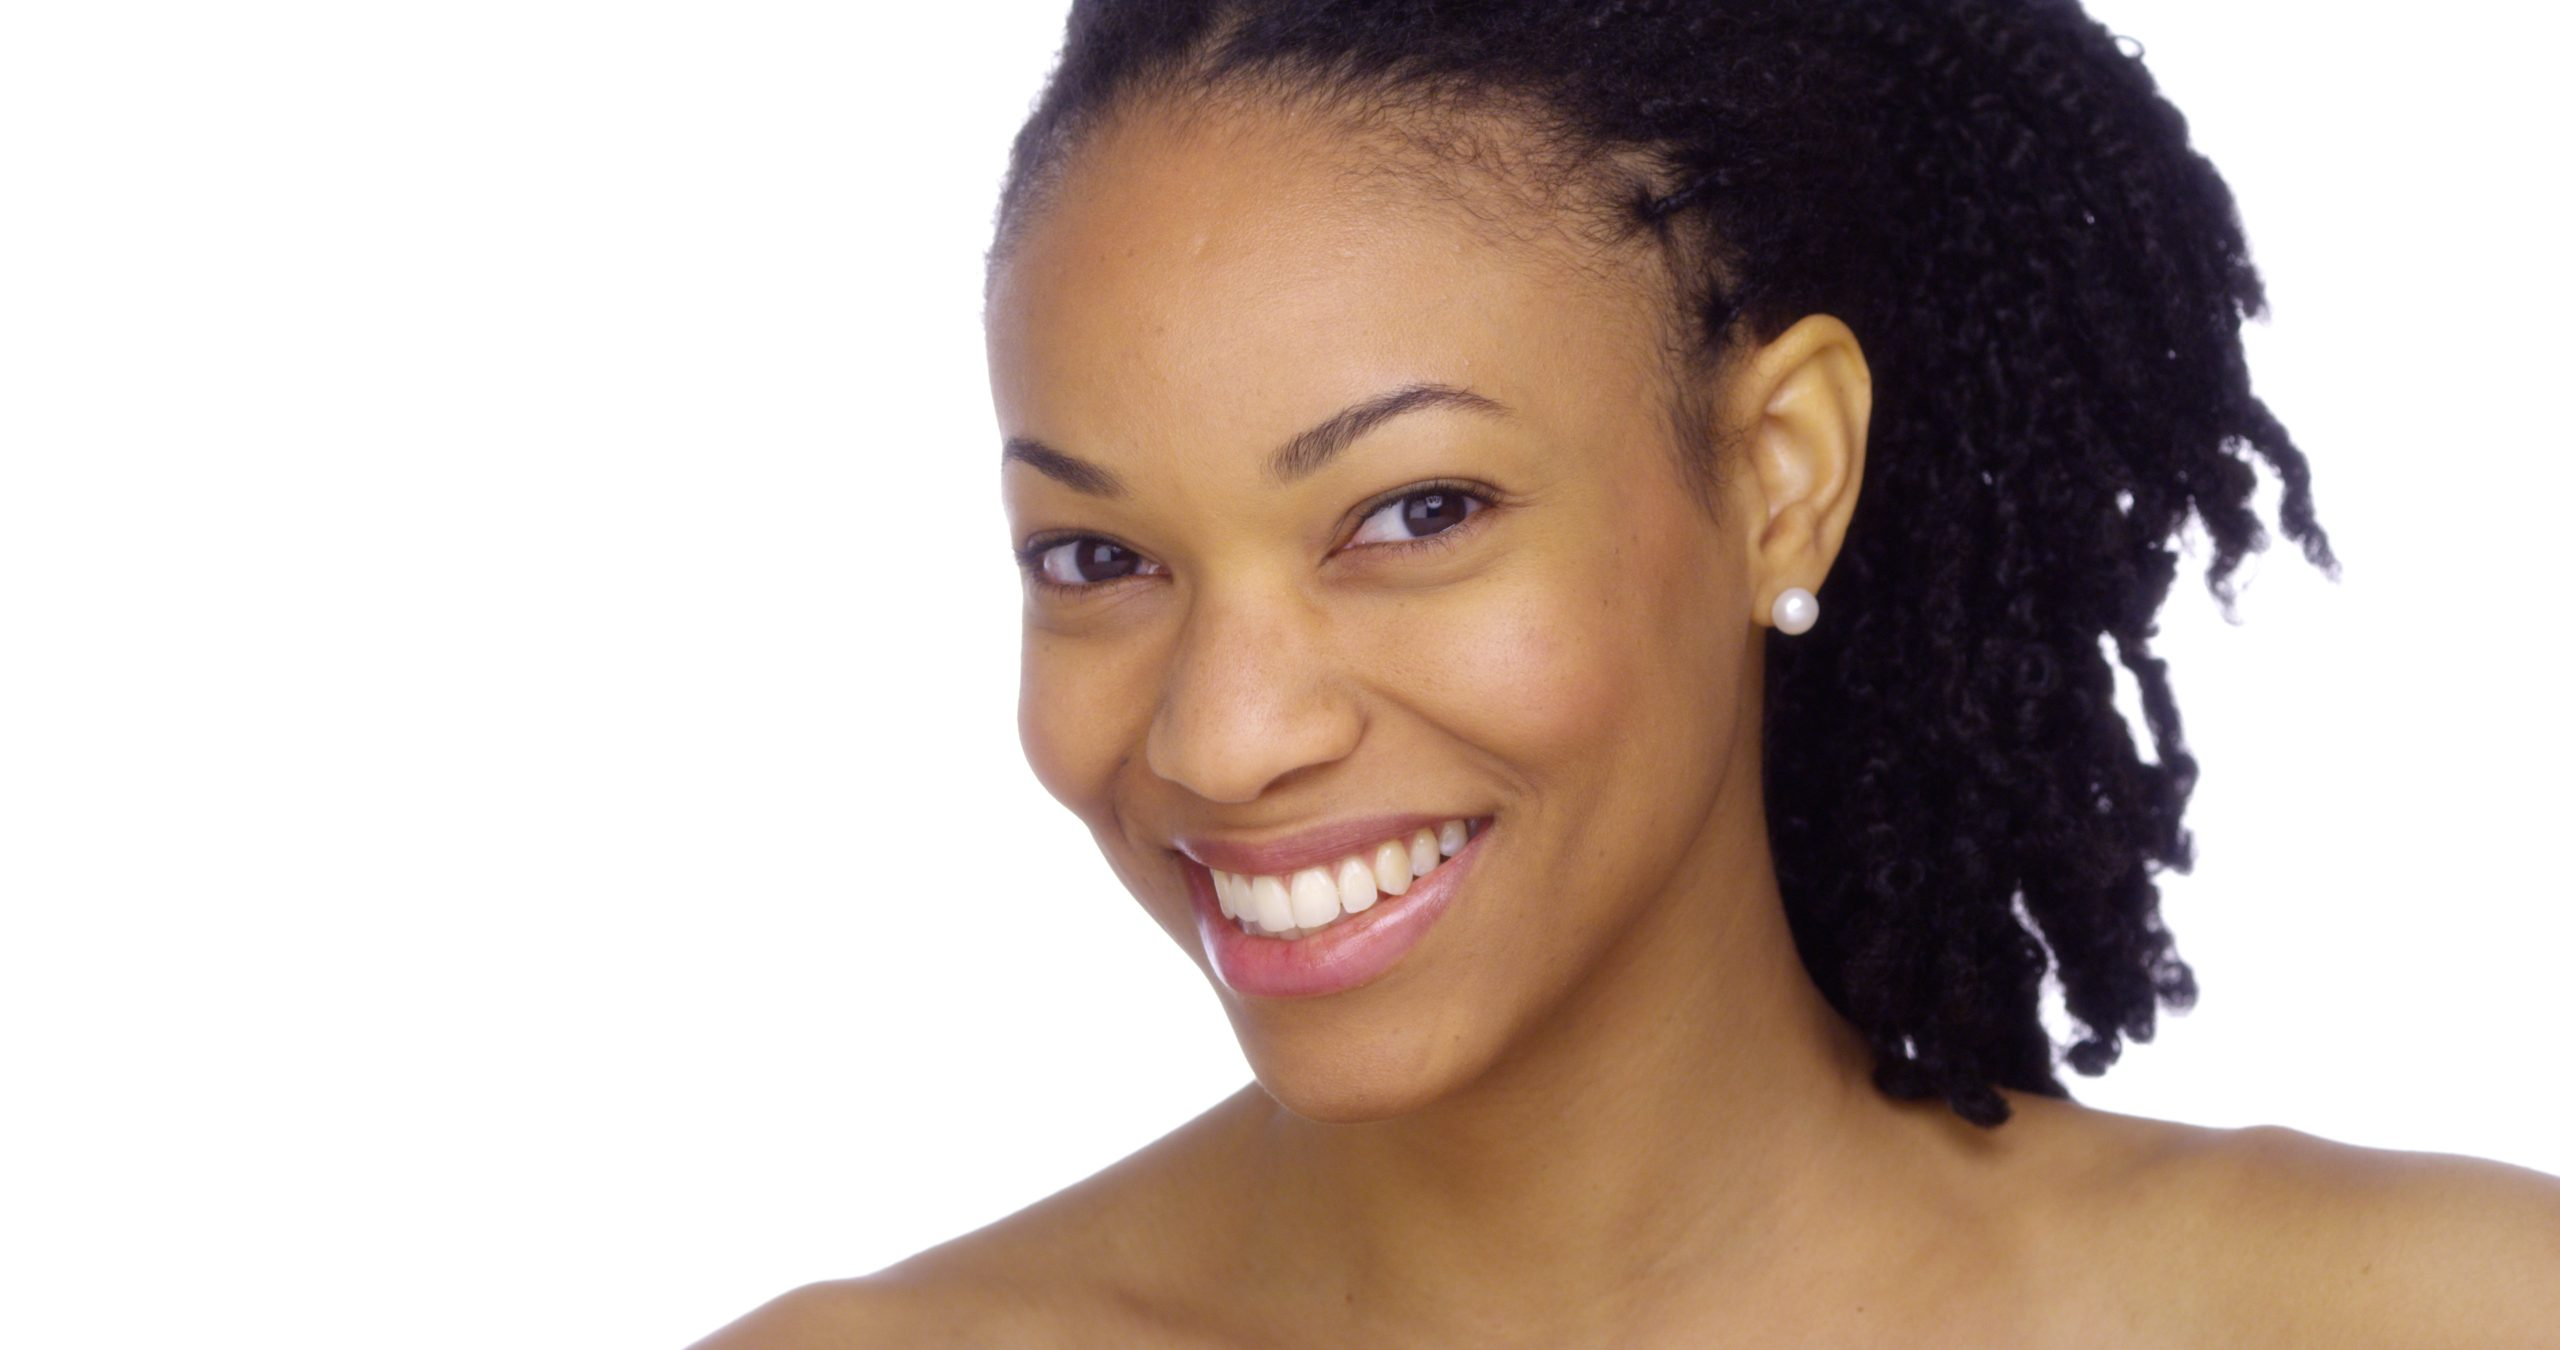 A smiling Black woman with great skin